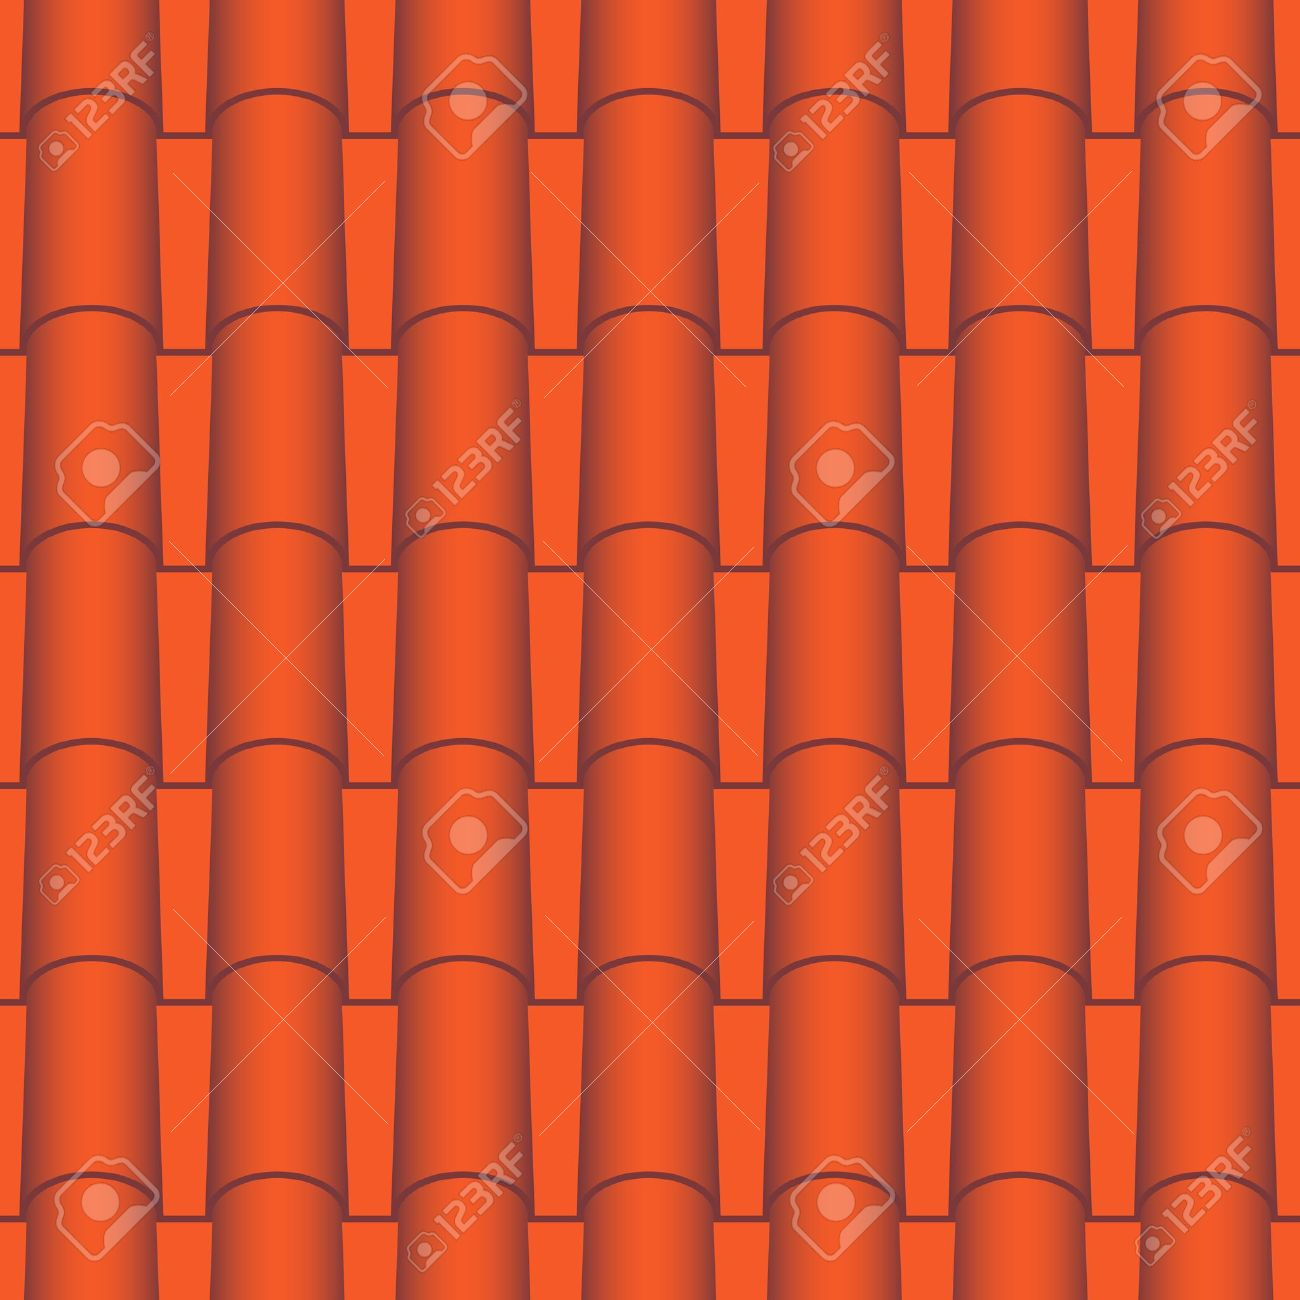 Red Roof Tiles Seamless Vector Texture Royalty Free Cliparts.